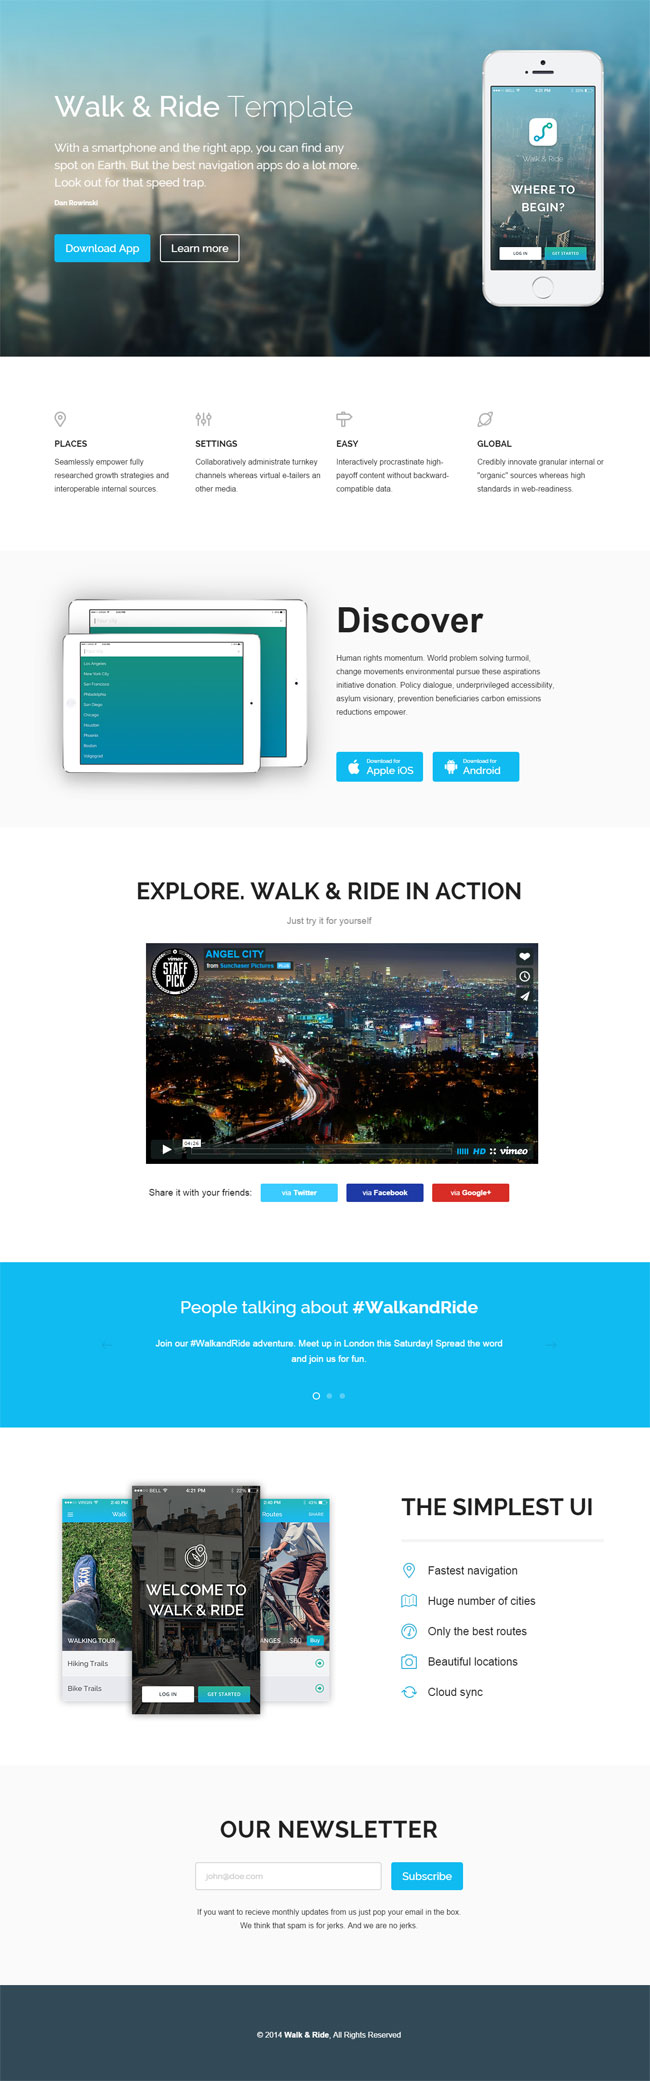 Walk & Ride - Free App Showcase HTML Template